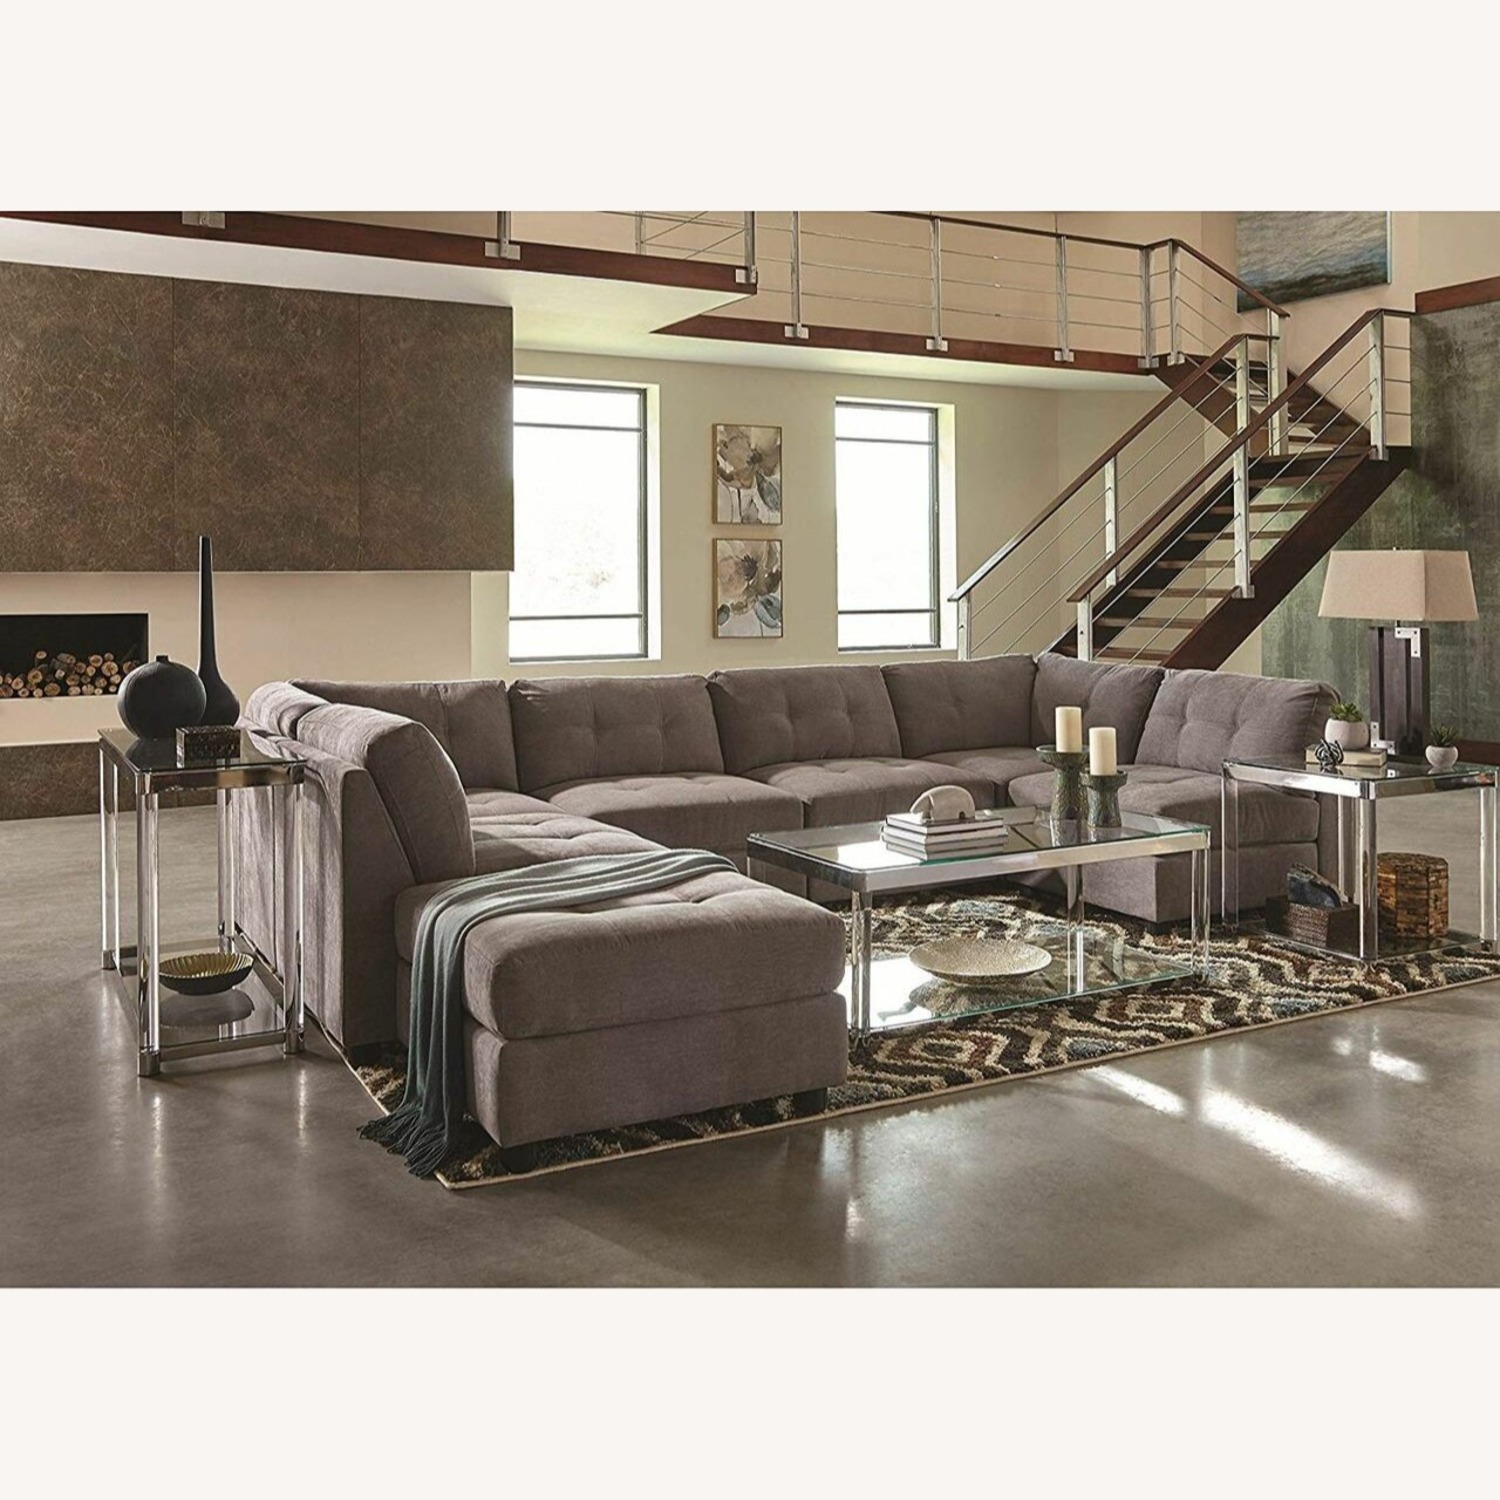 7-Piece Sectional In Dove Chenille Fabric - image-6